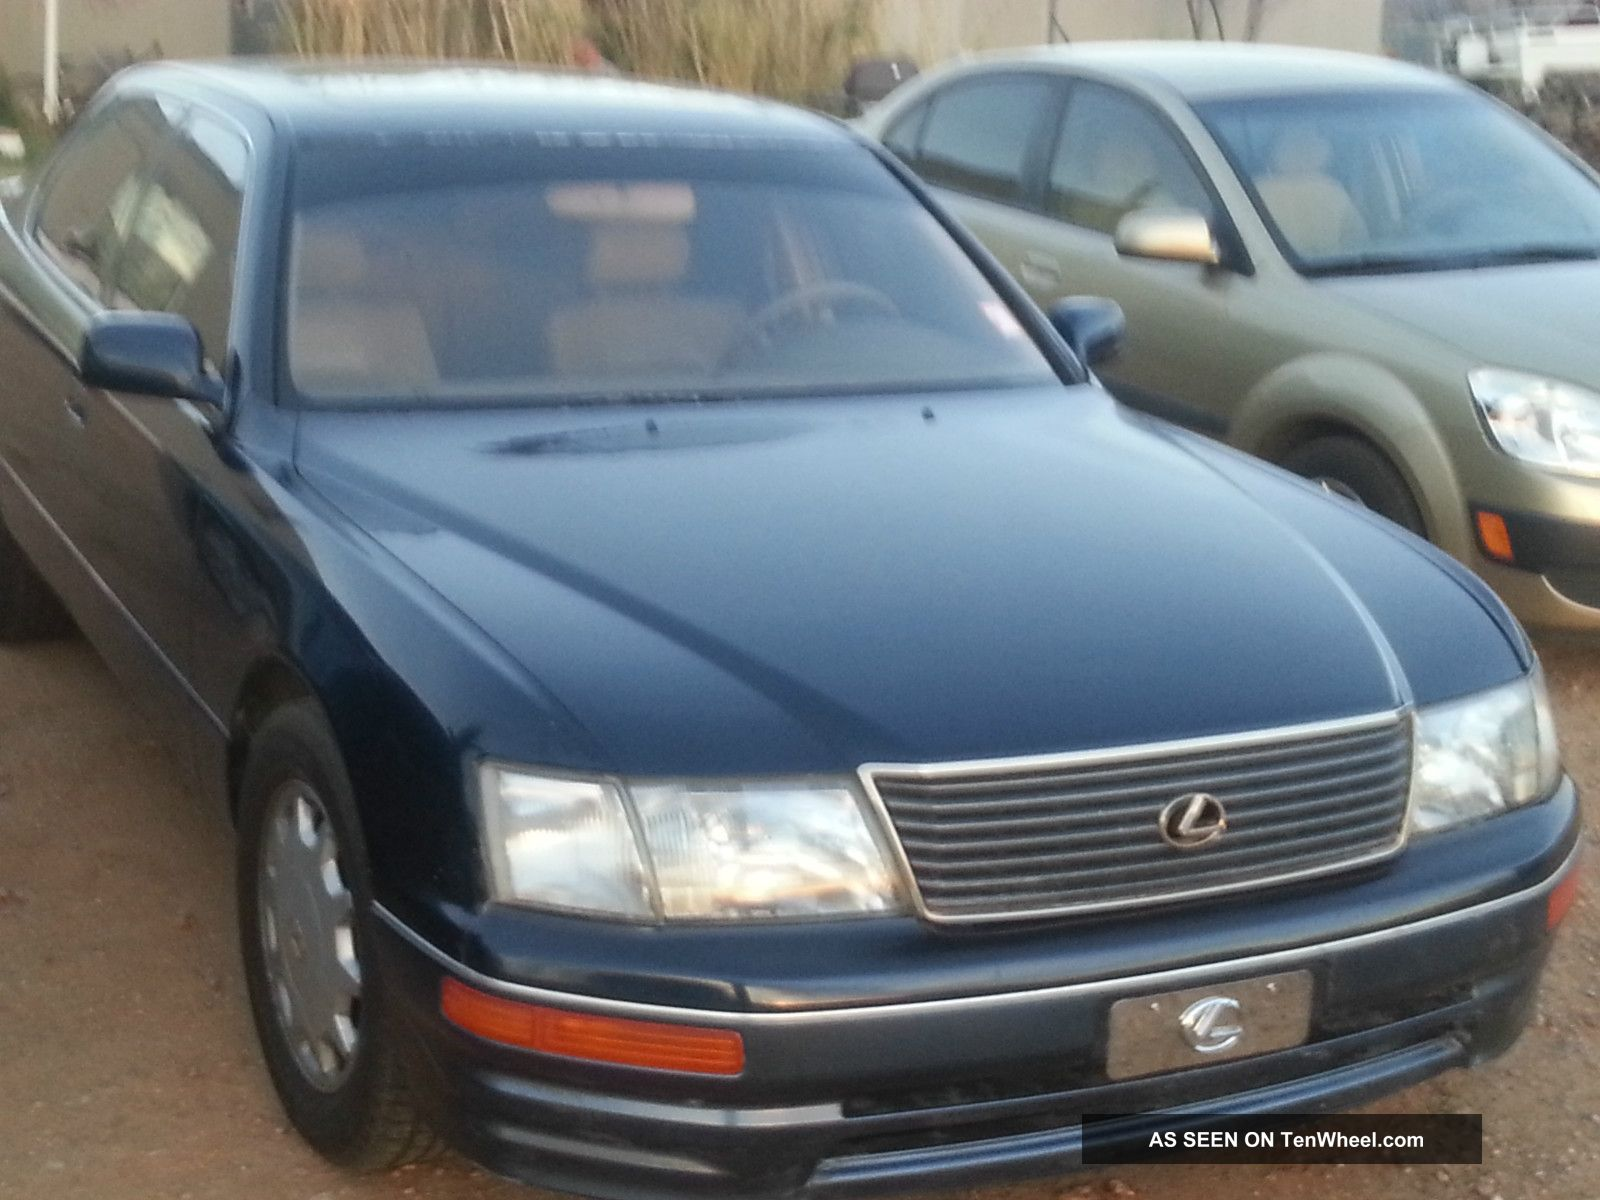 1995 Lexus Ls400 Specs New Cars Used Cars Car Reviews and Pricing